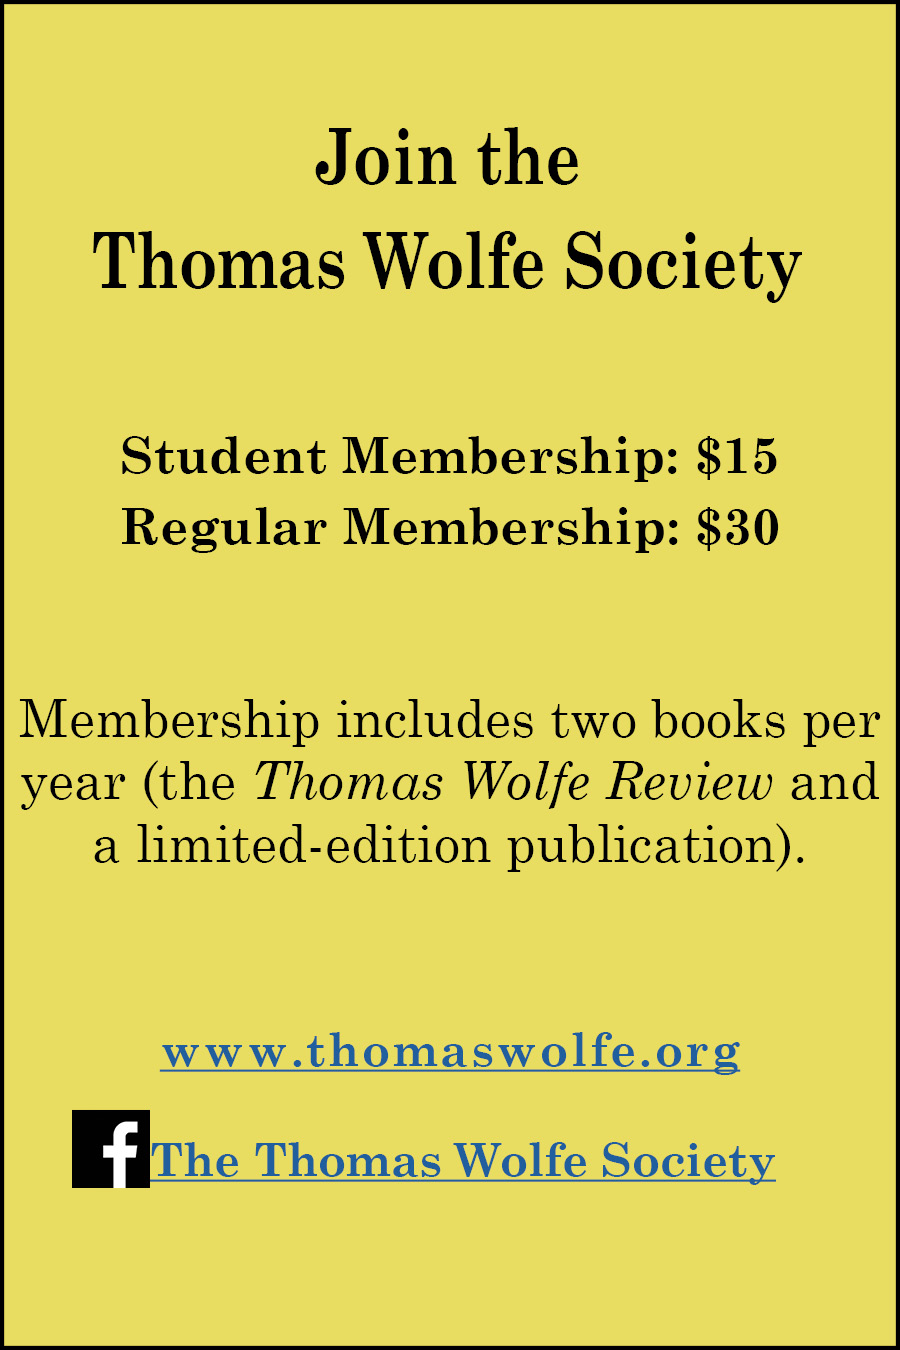 Thomas Wolfe Society Ad 2019